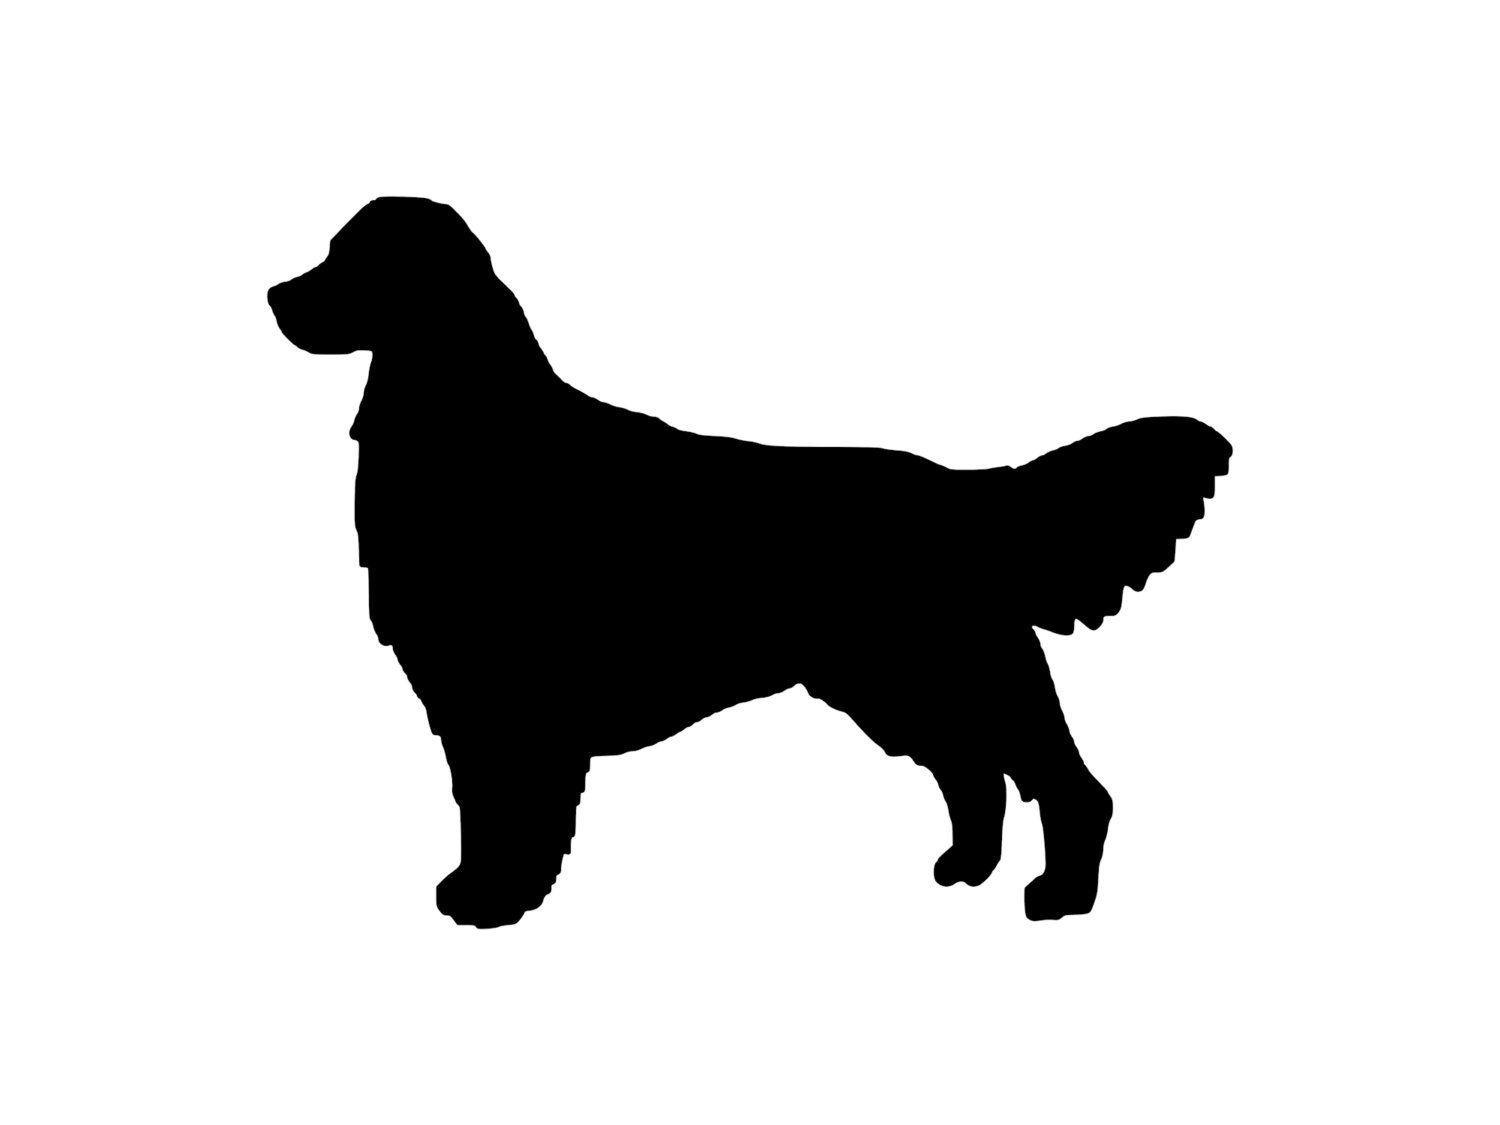 1500x1125 Golden Retriever Dog Outdoor Vinyl Silhouette, K9 Breed Adhesive